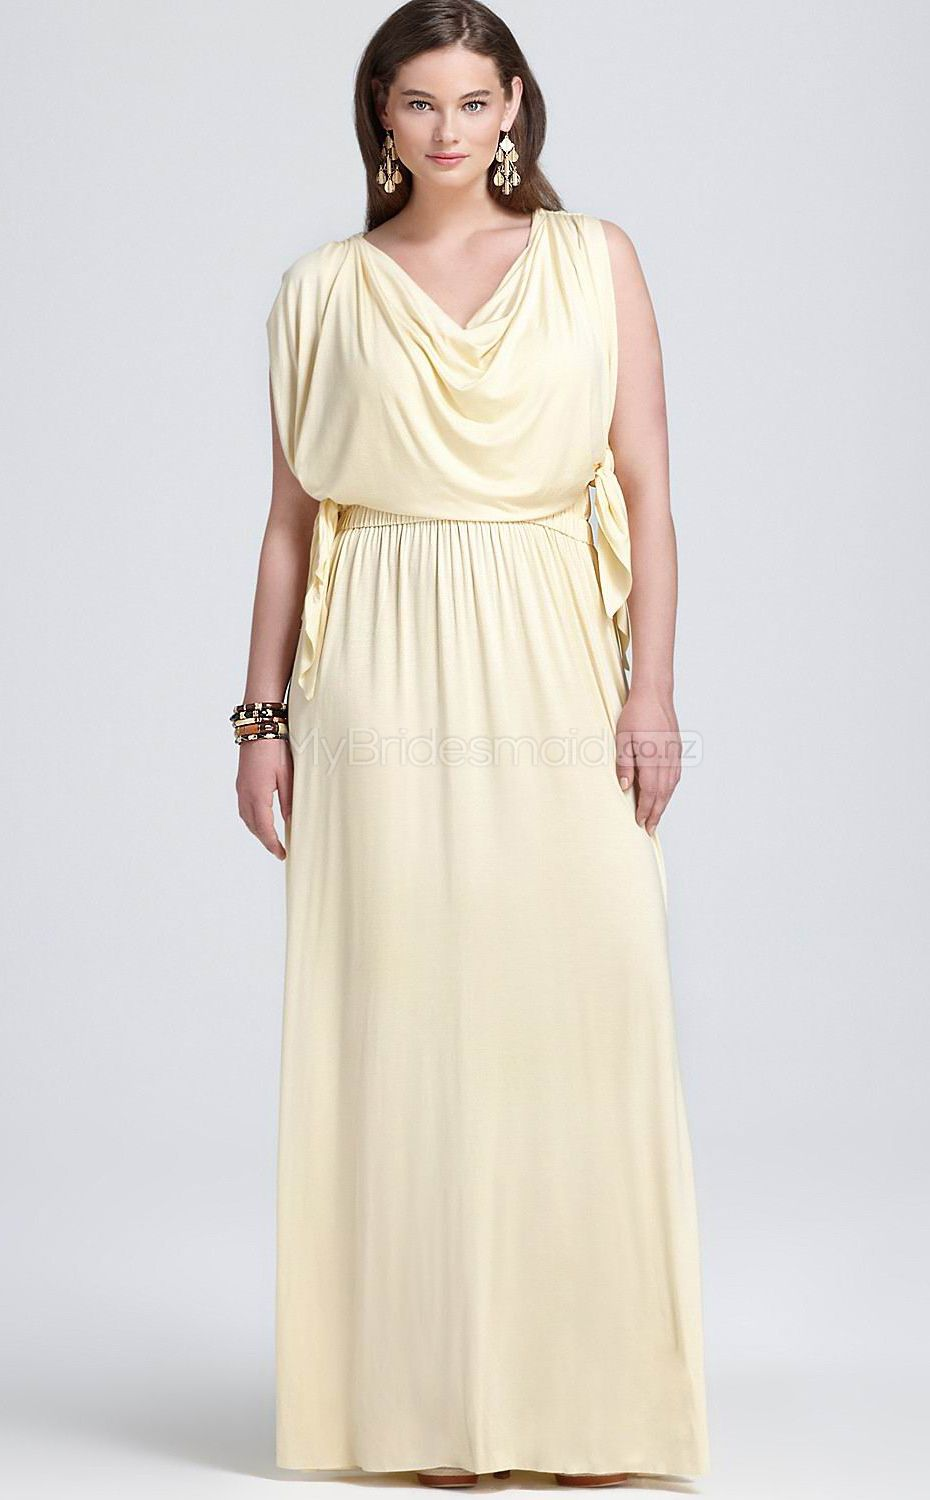 Chiffon a line v neck sleeveless ankle length plus size bridesmaid chiffon a line v neck sleeveless ankle length plus size bridesmaid dress ombrellifo Image collections